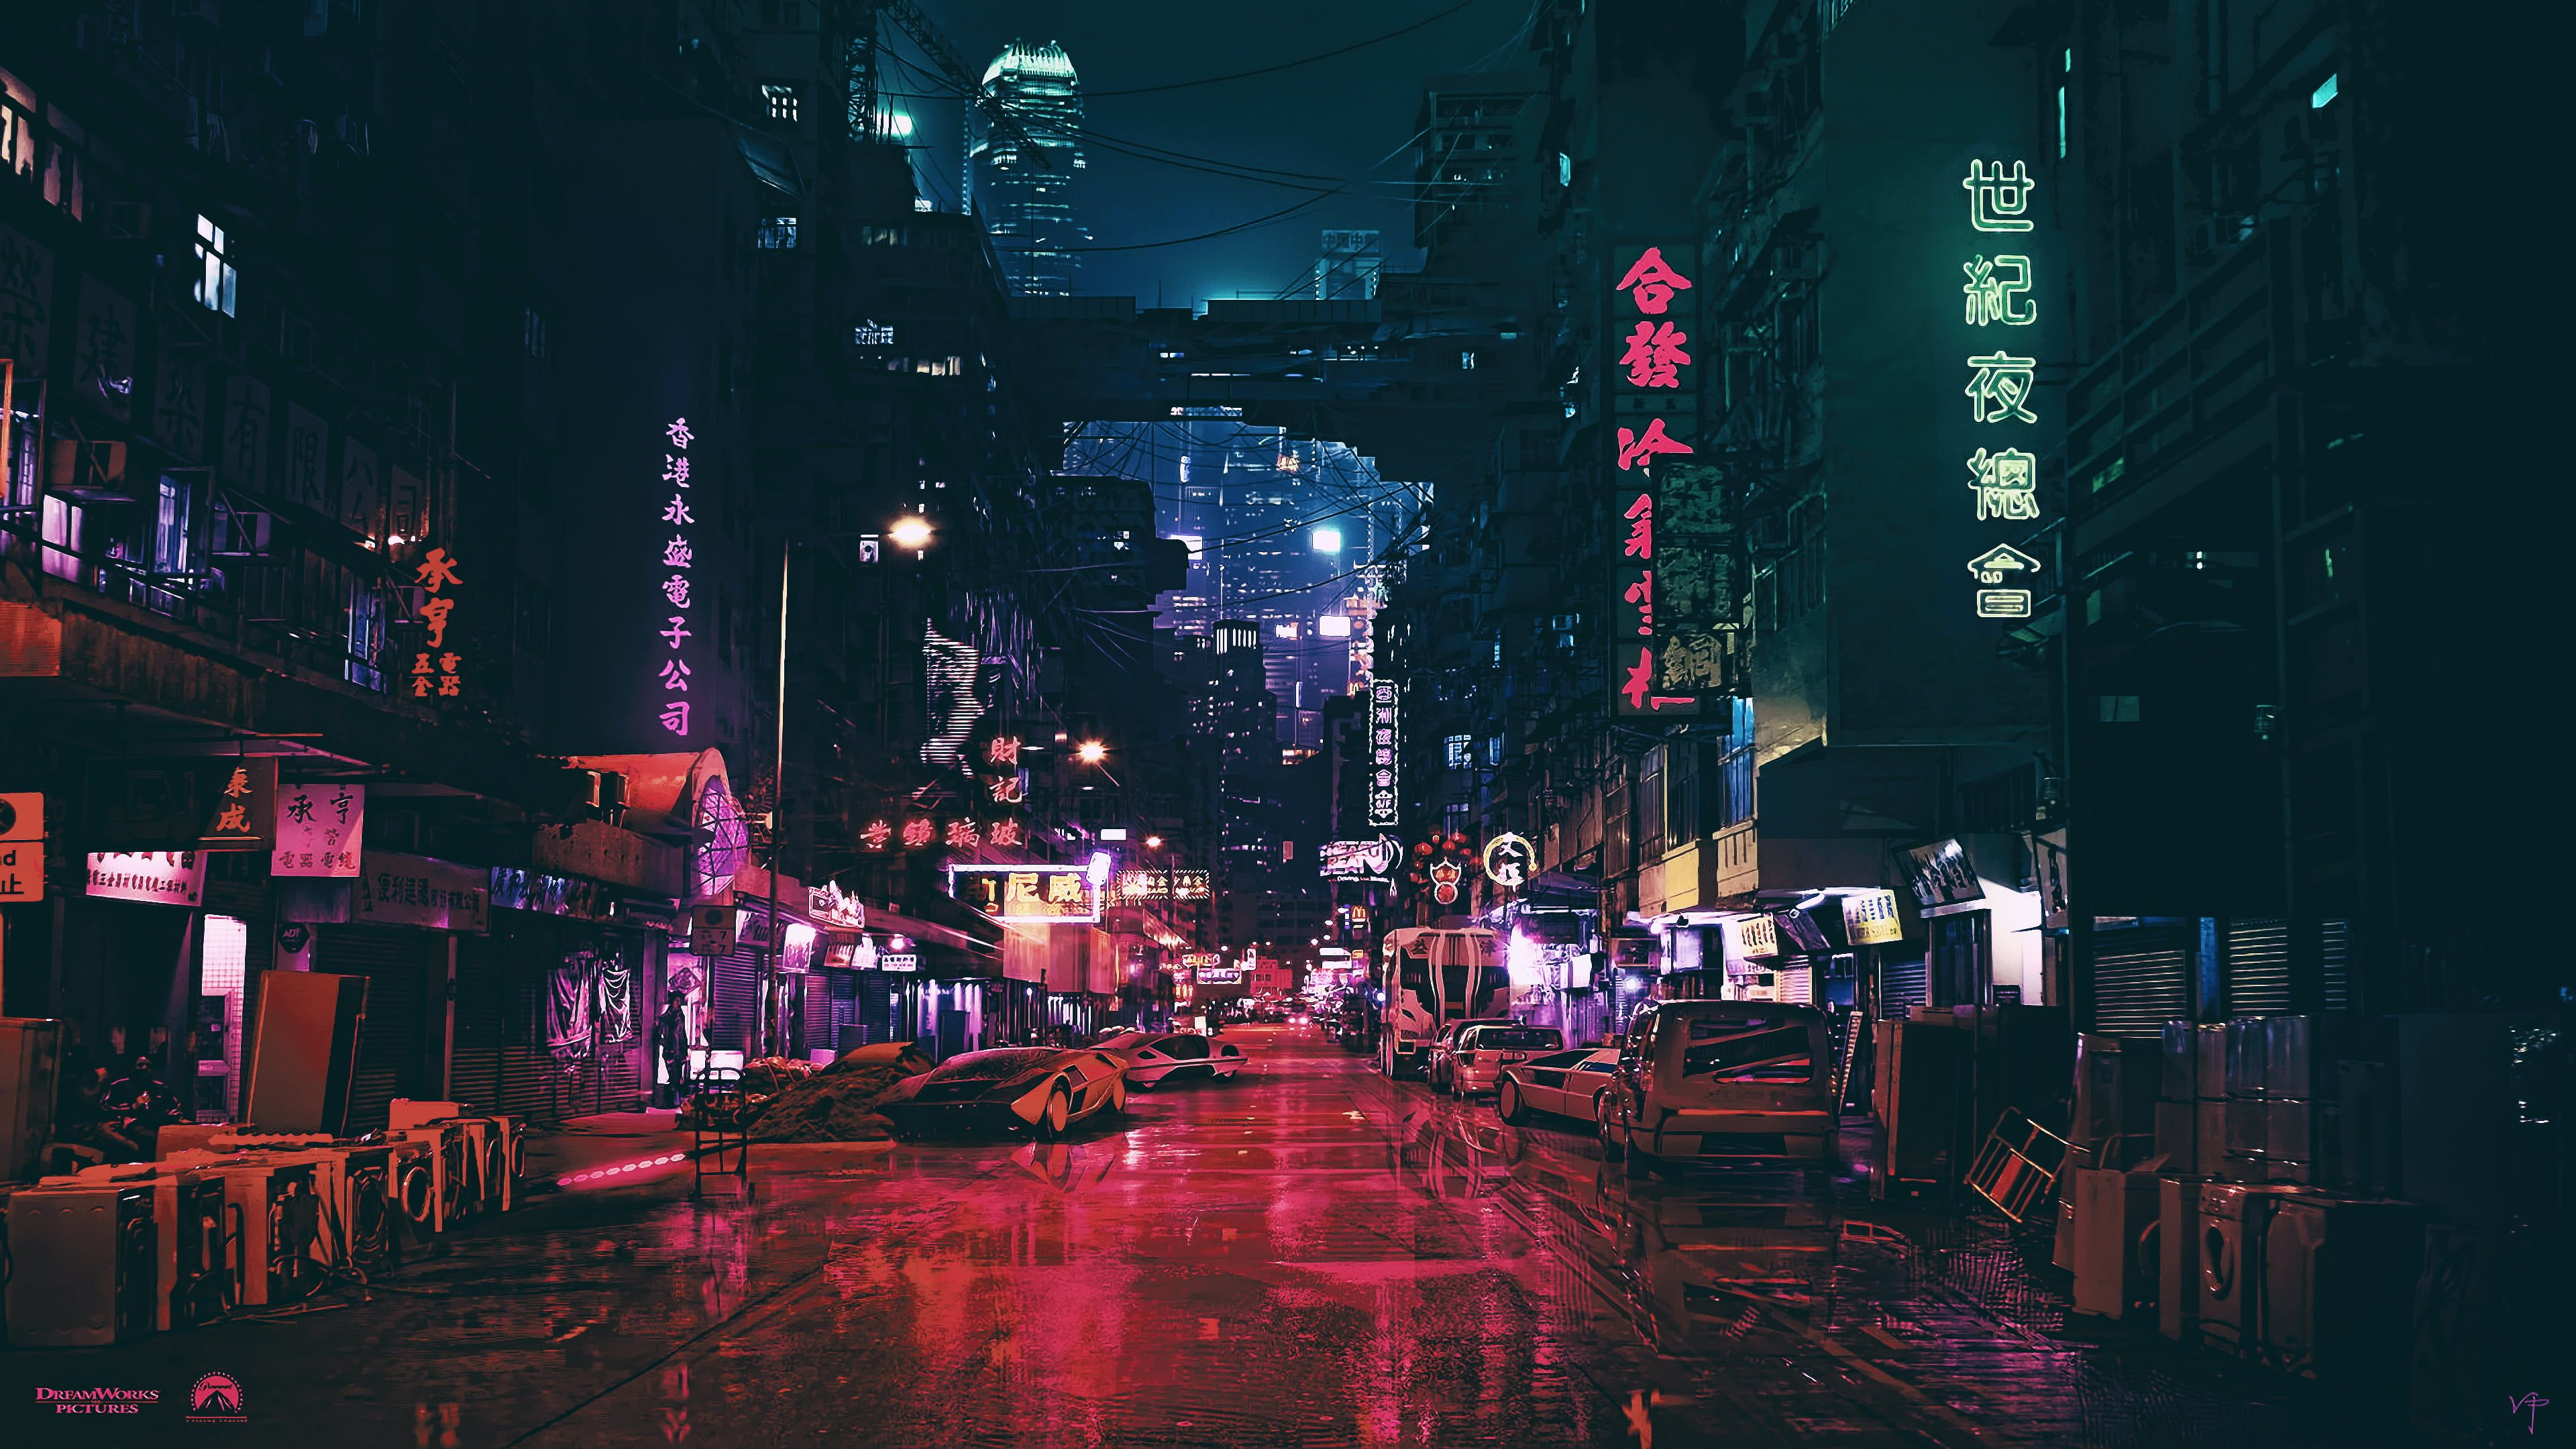 Black Signages City Roads With Lightings And Cars Night Artwork Futuristic City Cyberpunk Cyber Science Fict City Wallpaper Futuristic City Cyberpunk City